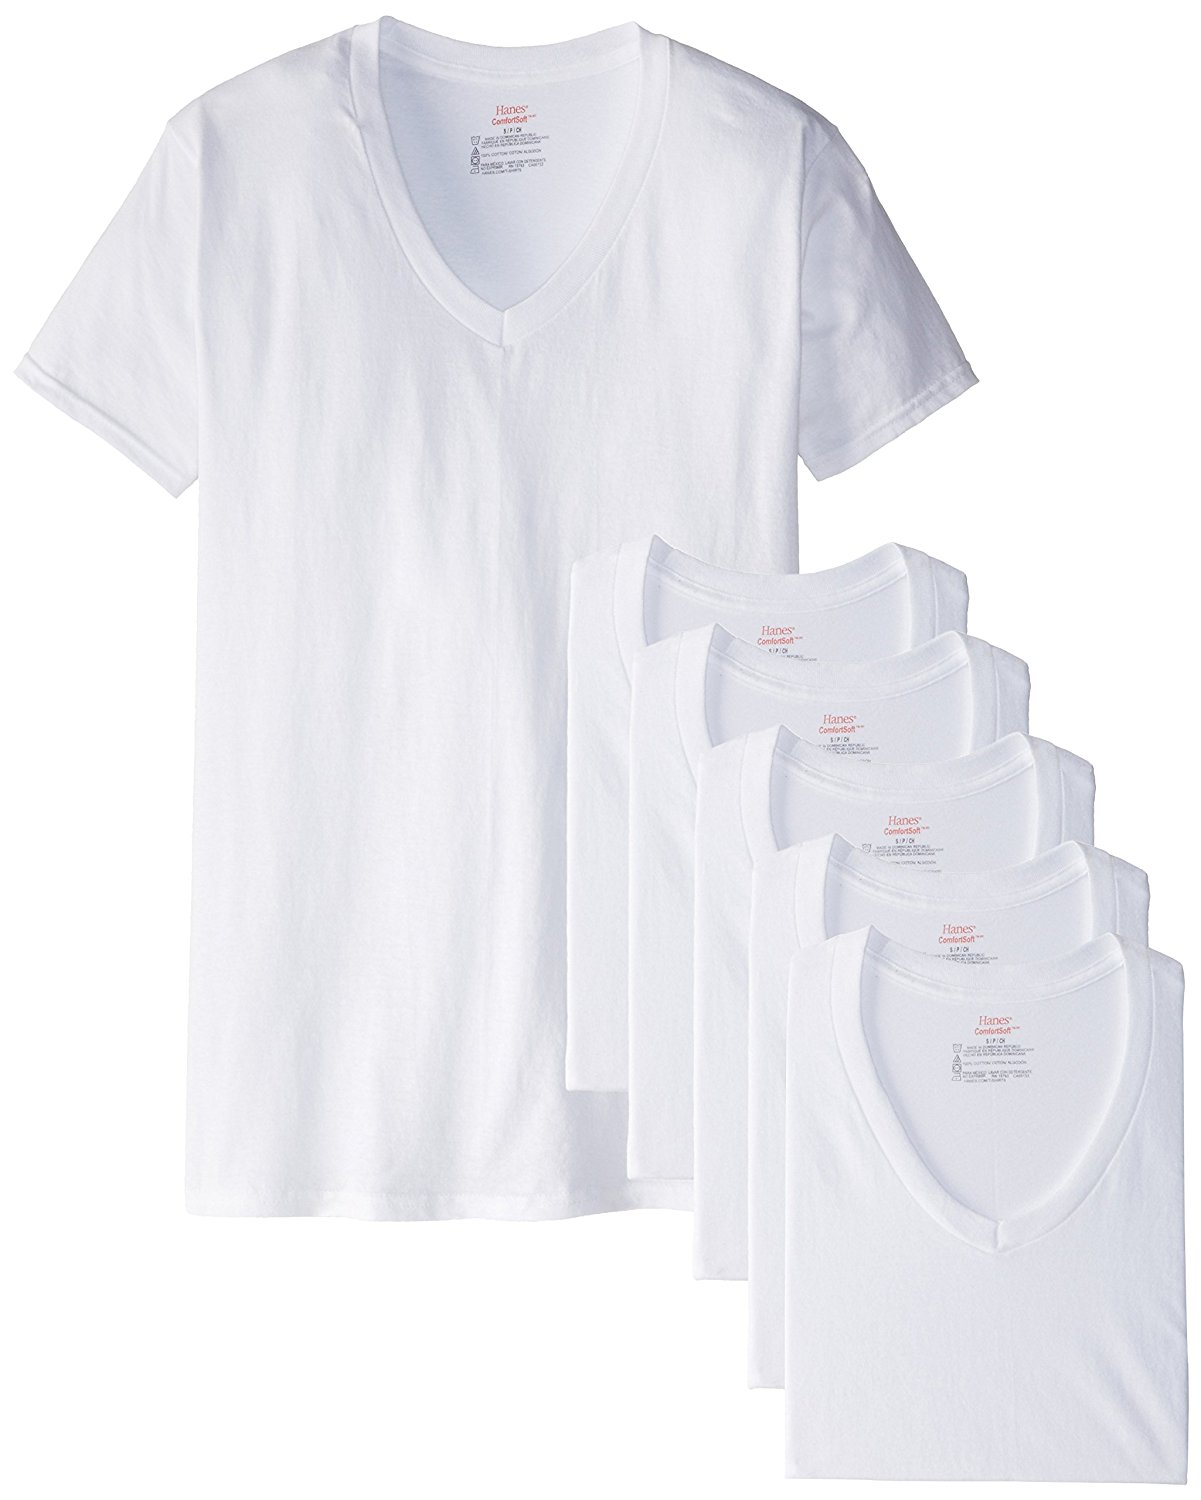 Cheap Hanes Long T Shirts Find Hanes Long T Shirts Deals On Line At